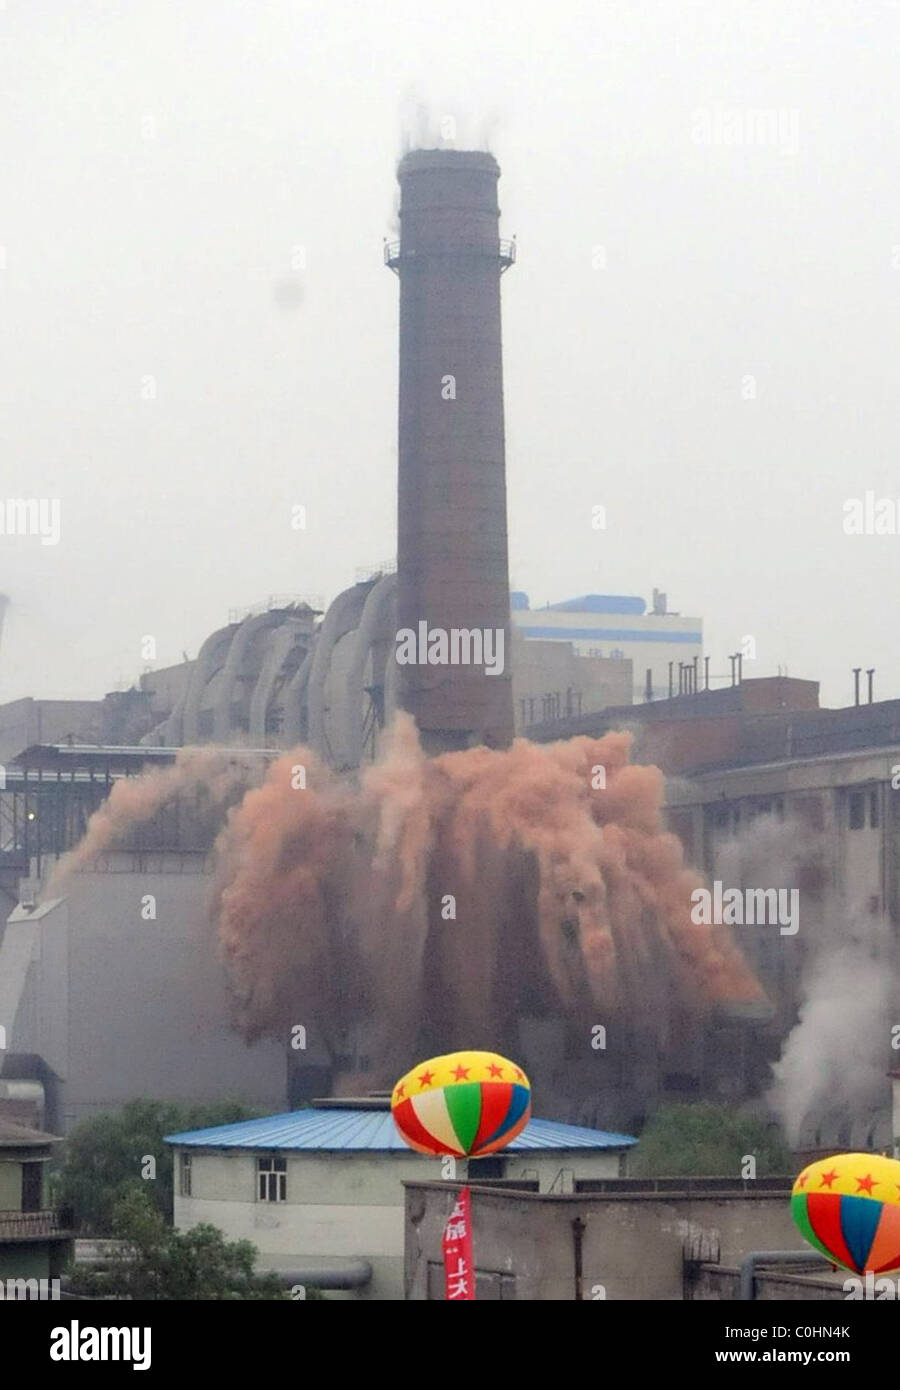 Chimney Brought Down A Chimney  Feet Tall Is Demolished In An Explosion In Harbin In Chinas Heilongjiang